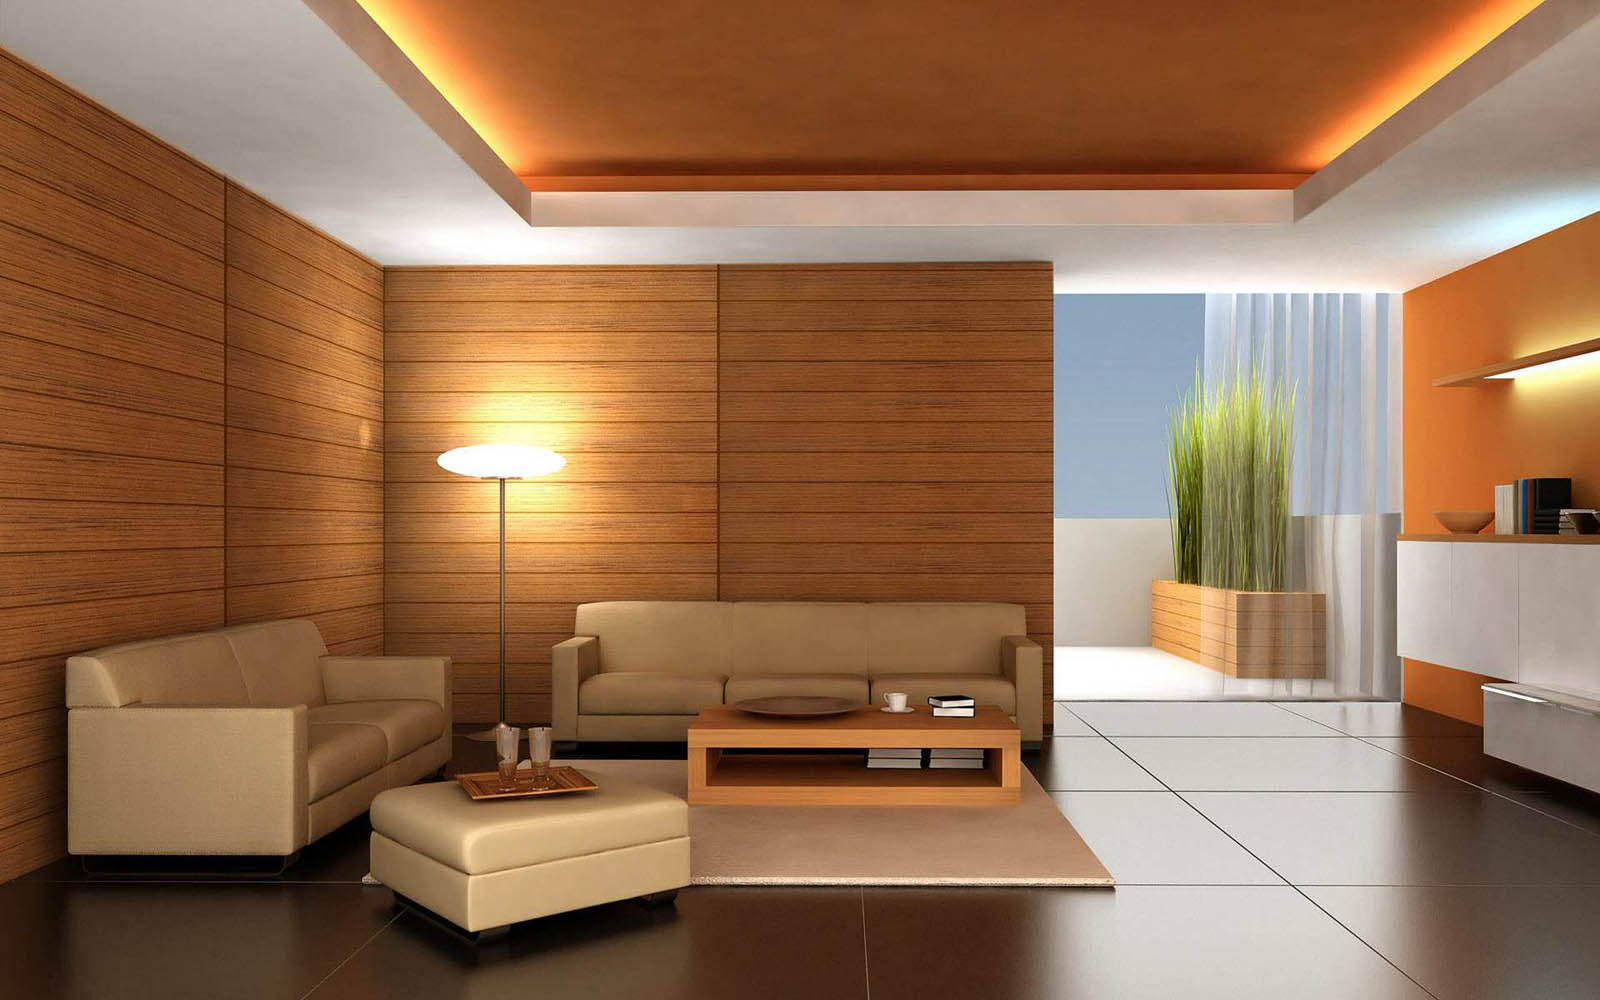 Living Room Background. Tag  Modern Living Room Photos Wallpapers Backgrounds Images and Pictures for free Gallery Mangklex